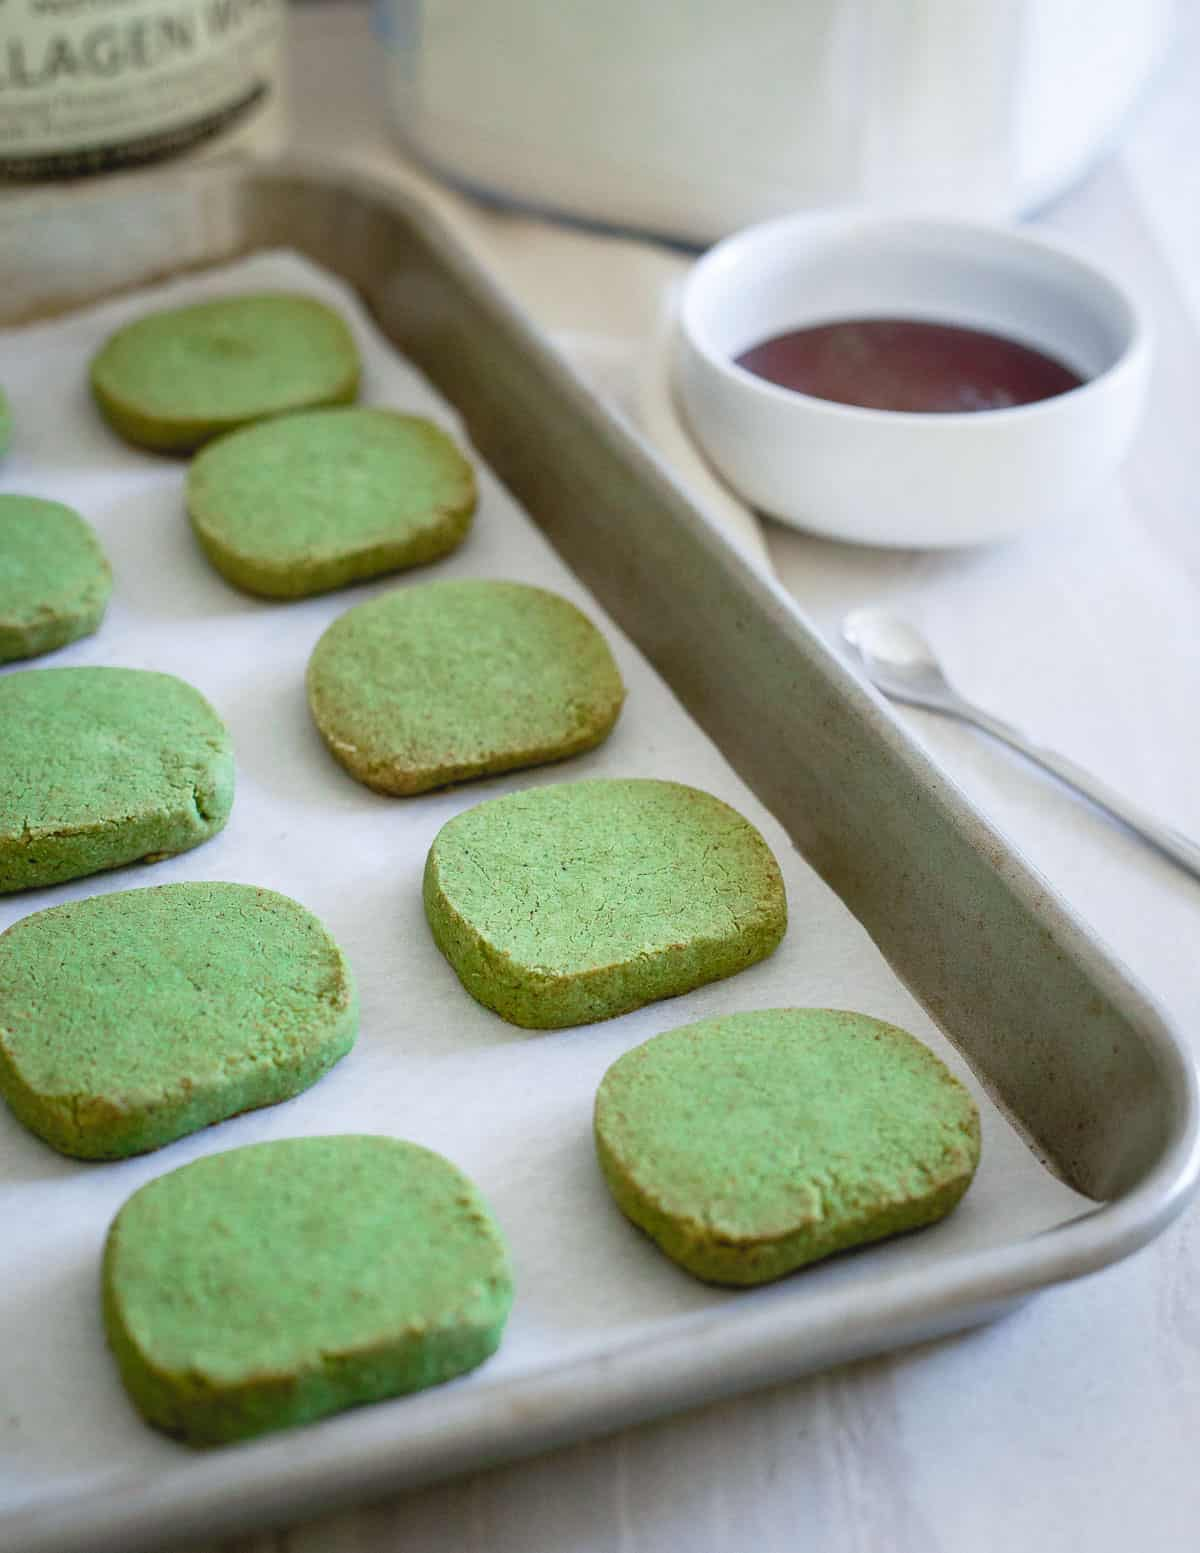 These matcha shortbread cookies are buttery, crisp and even gluten-free!